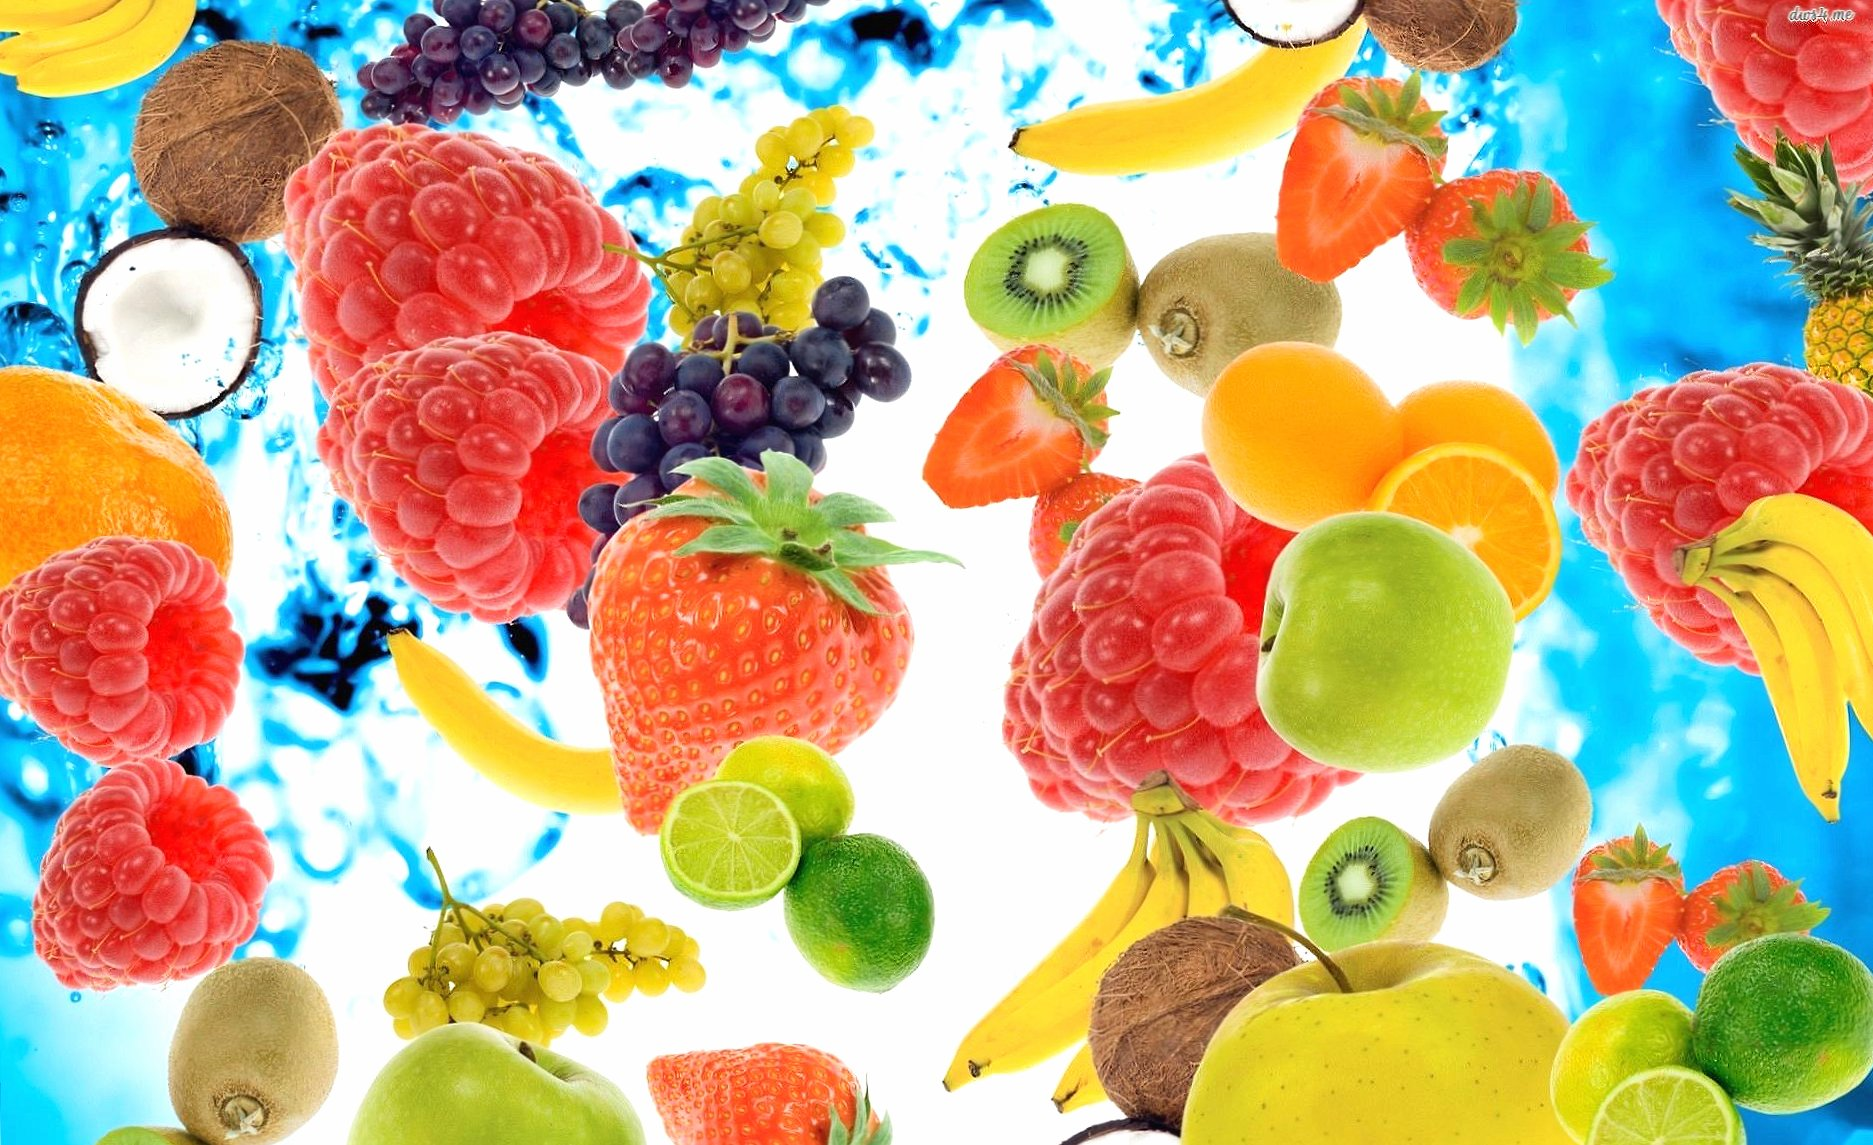 Fantasy fruits composition wallpapers HD quality